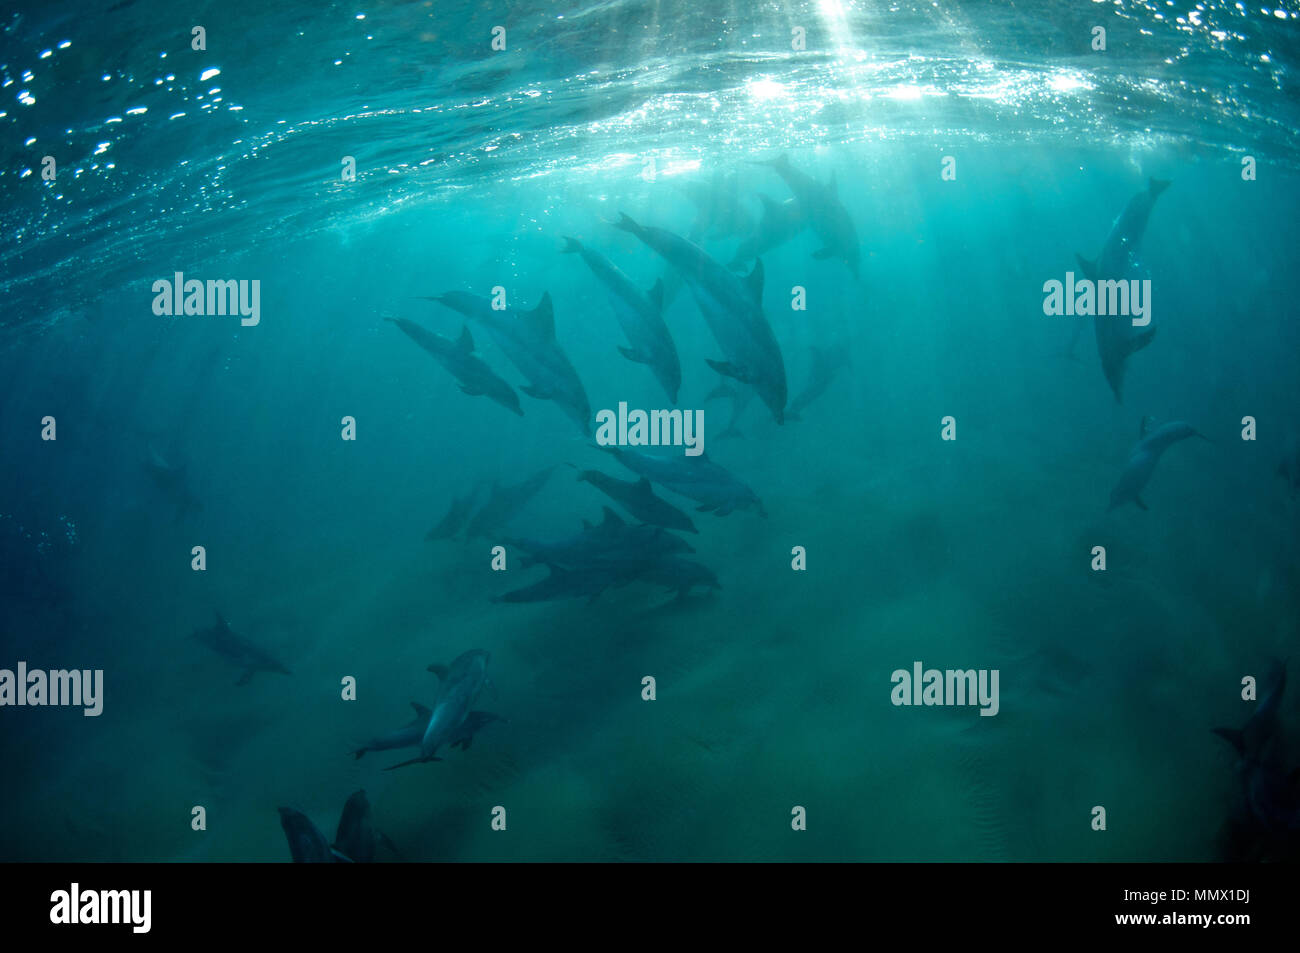 Bottlenose dolphins, Tursiops sp., Coffee Bay, Eastern Cape Wild Coast, South Africa - Stock Image